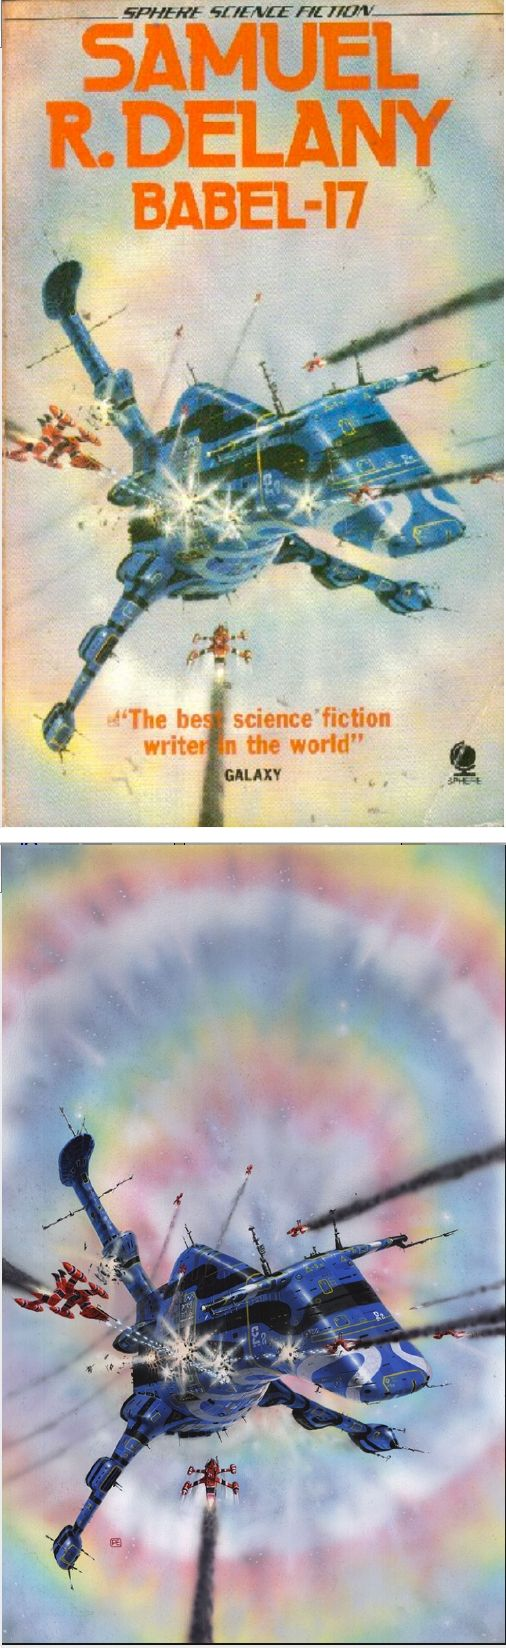 Watercolor book covers - Peter Elson Babel 17 By Samuel R Delany 1977 Sphere Books